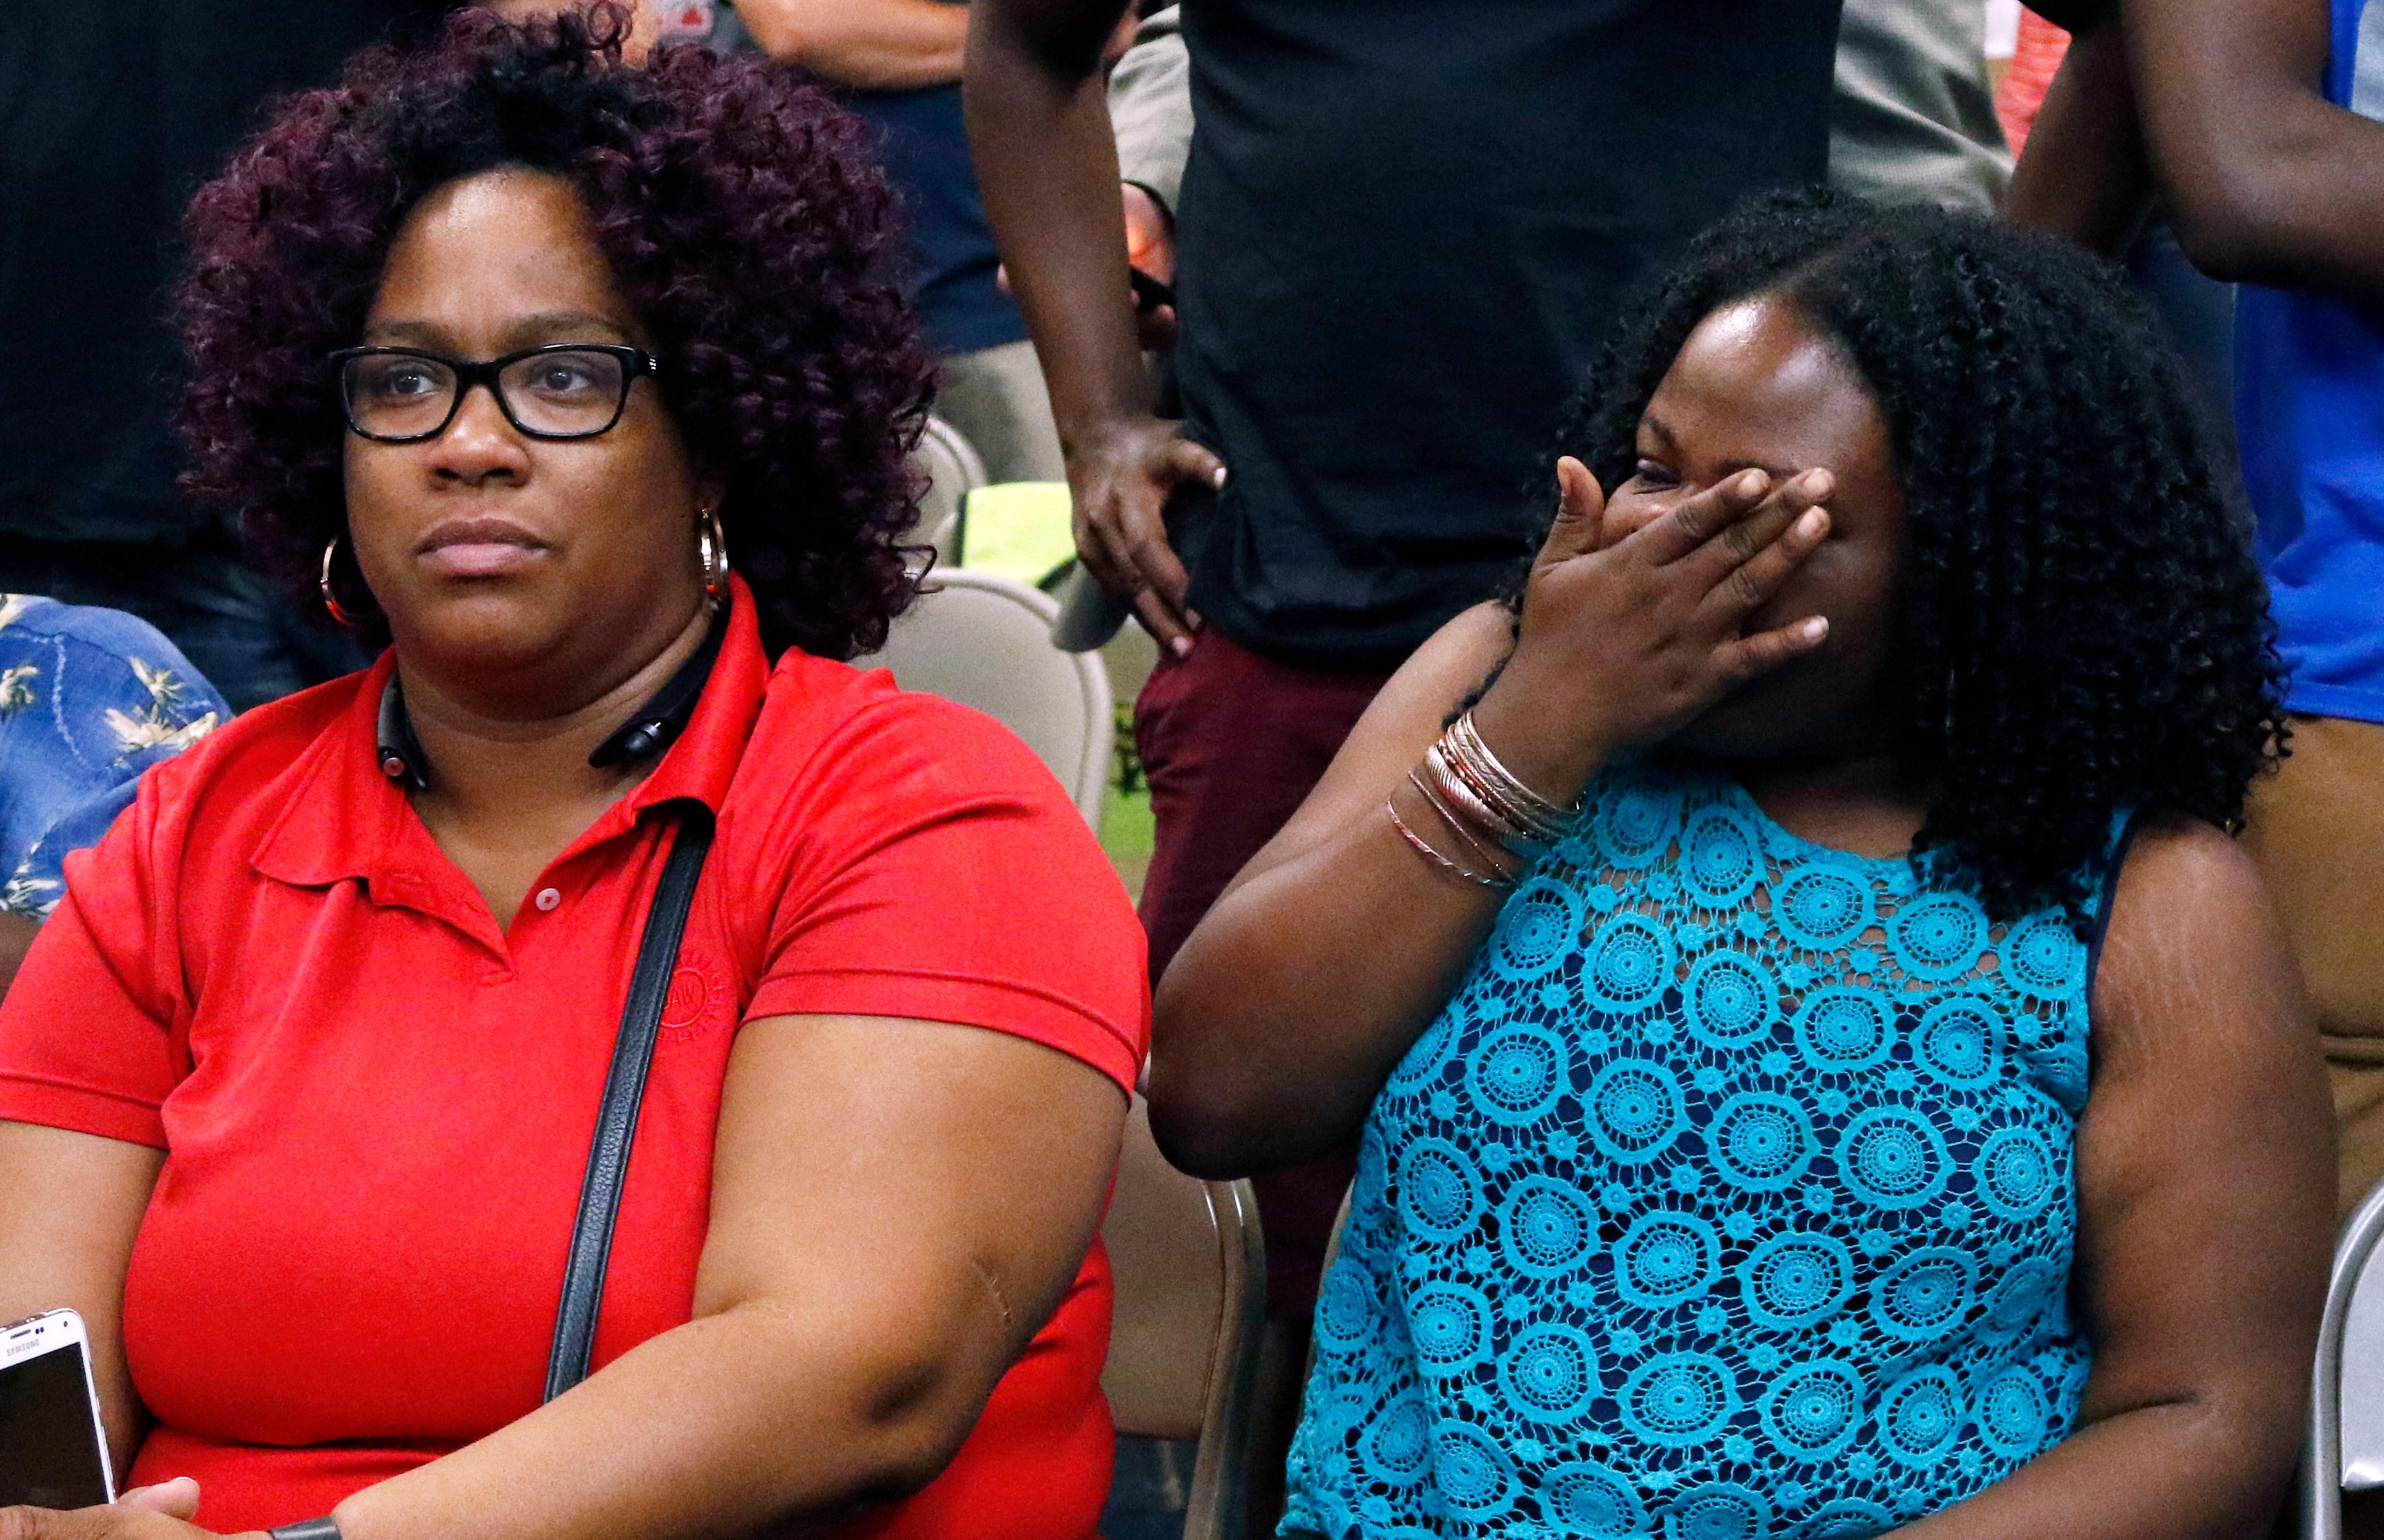 United Auto Workers members, some Nissan employees and supporters express their disappointment at losing their bid to form a union at the Nissan vehicle assembly plant in Canton, Miss., Friday, Aug. 4, 2017.  (AP Photo/Rogelio V. Solis)